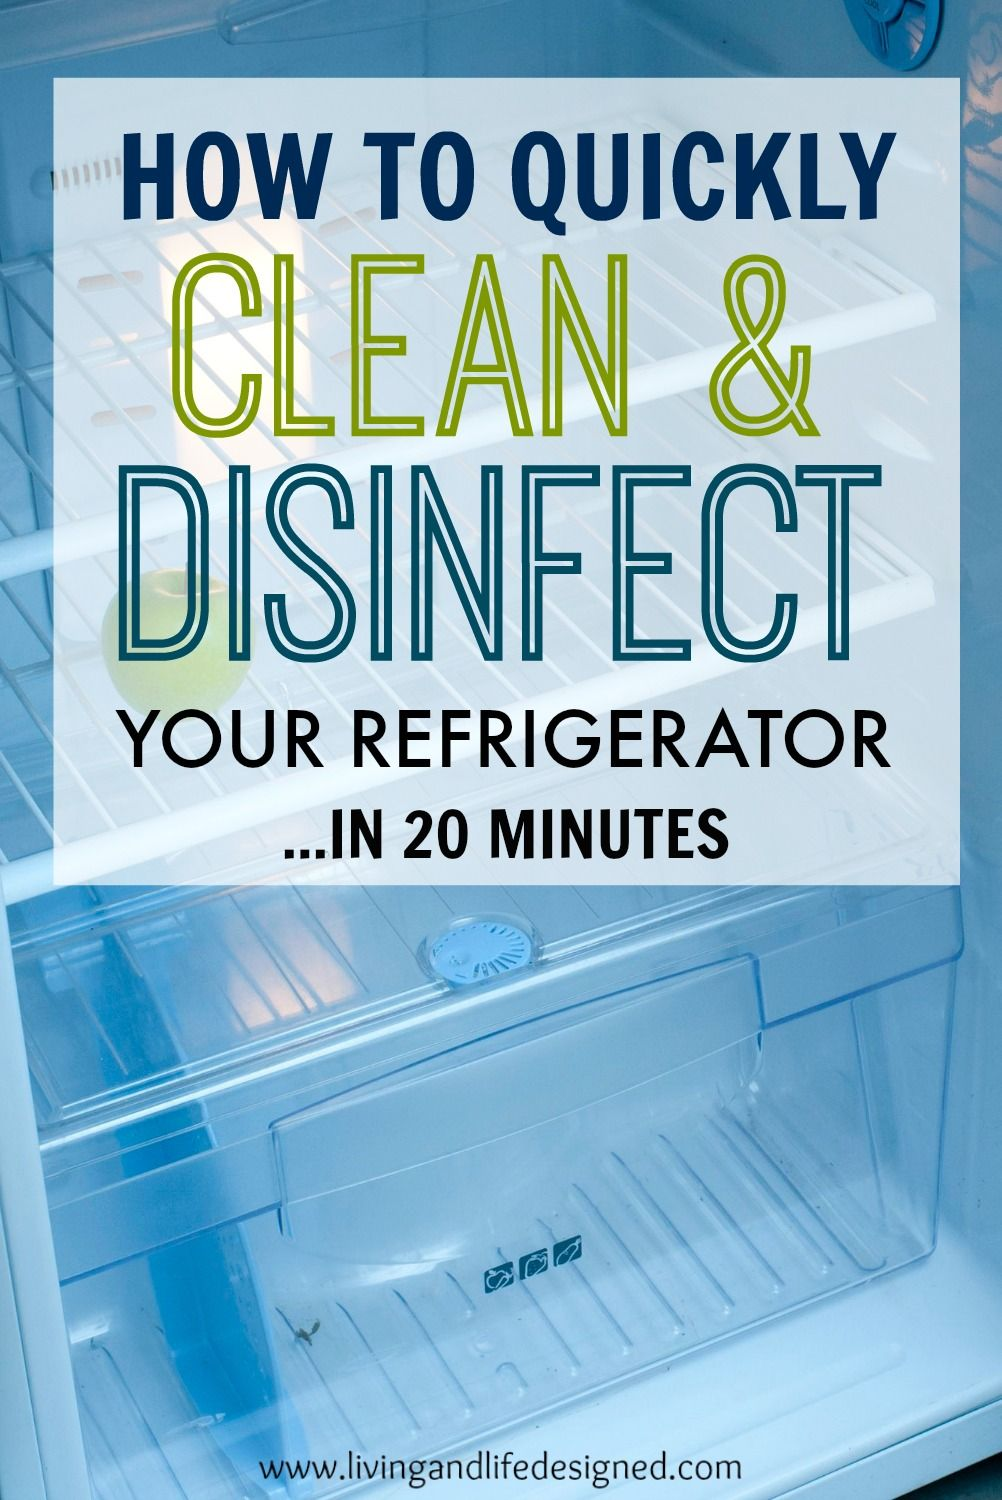 How to Clean & Disinfect Your Refrigerator in 20 Minutes ...